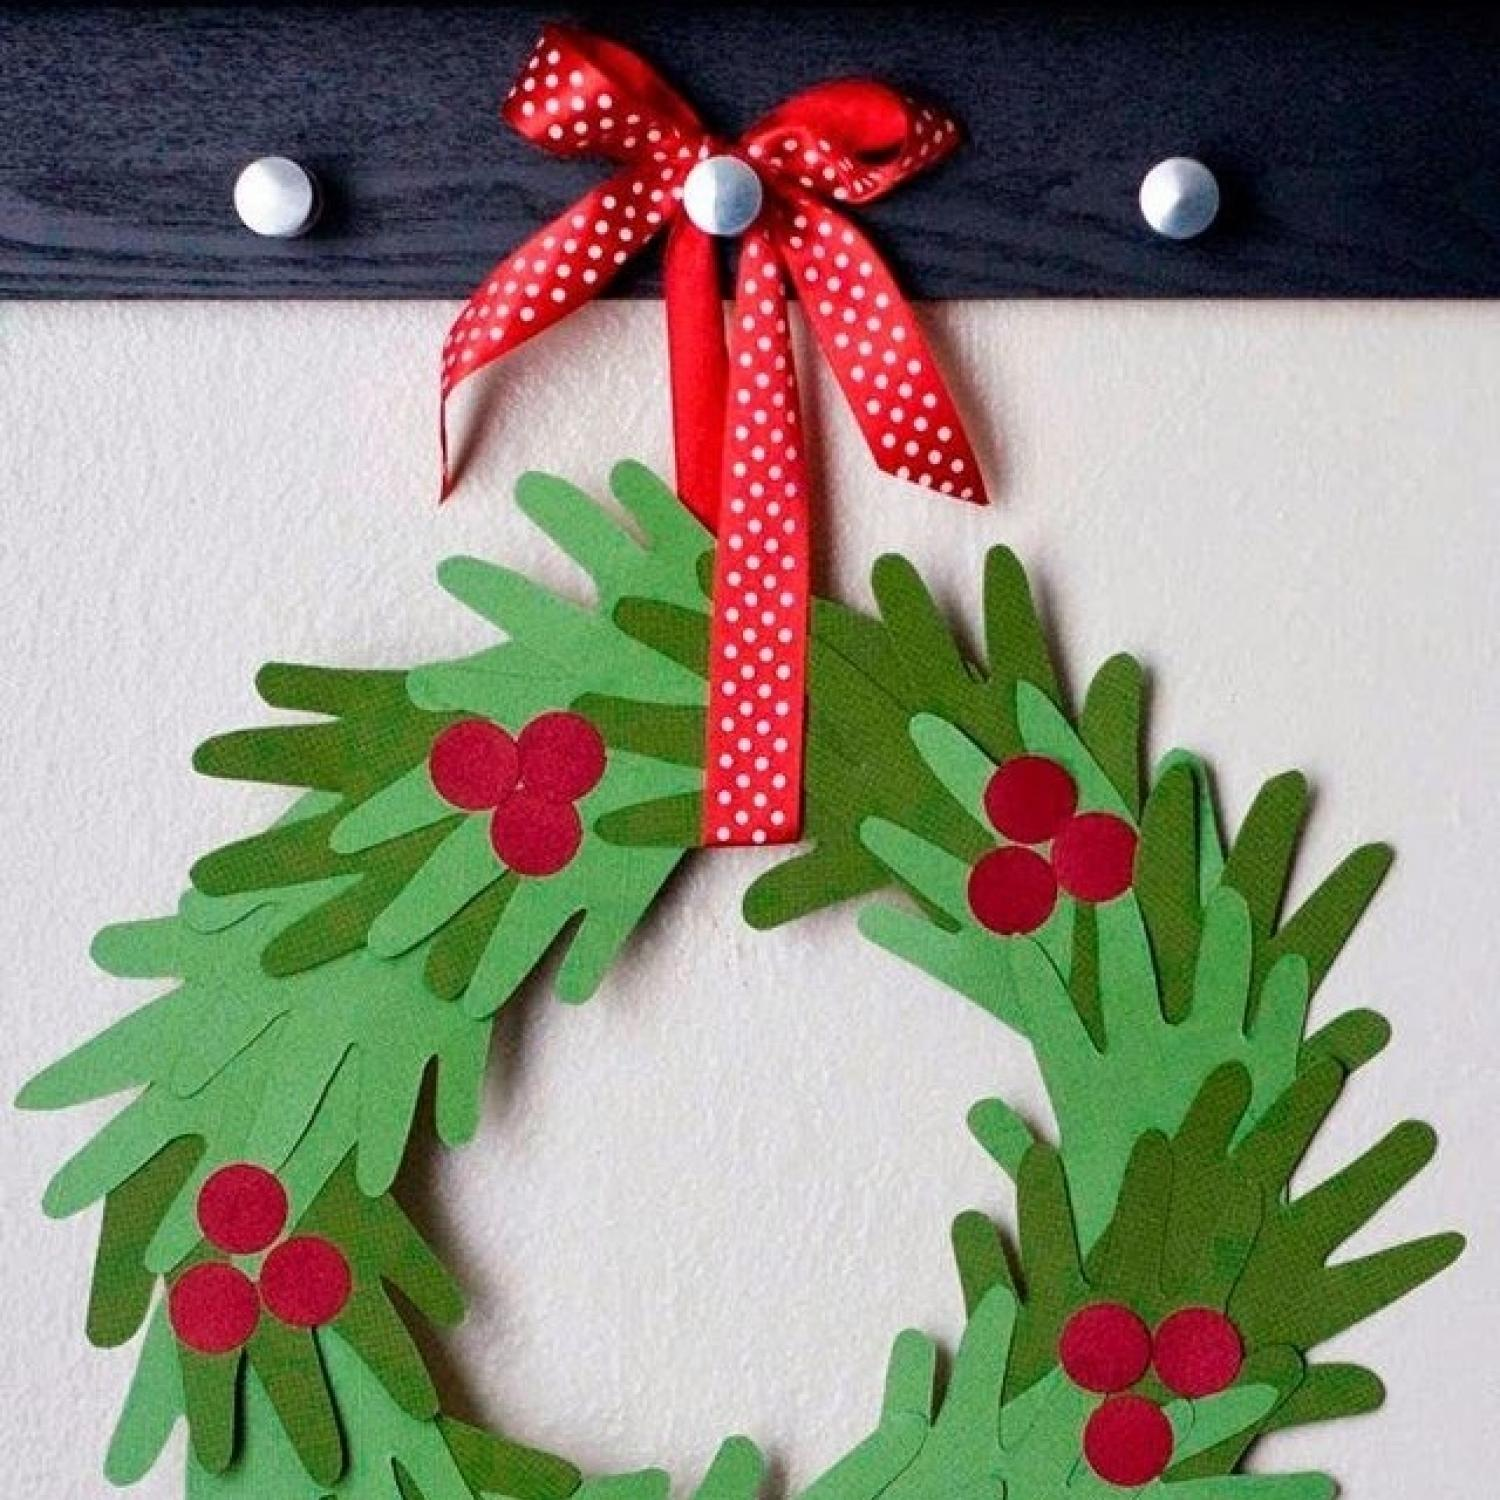 10 Handprint Christmas Crafts for Kids | Parenting